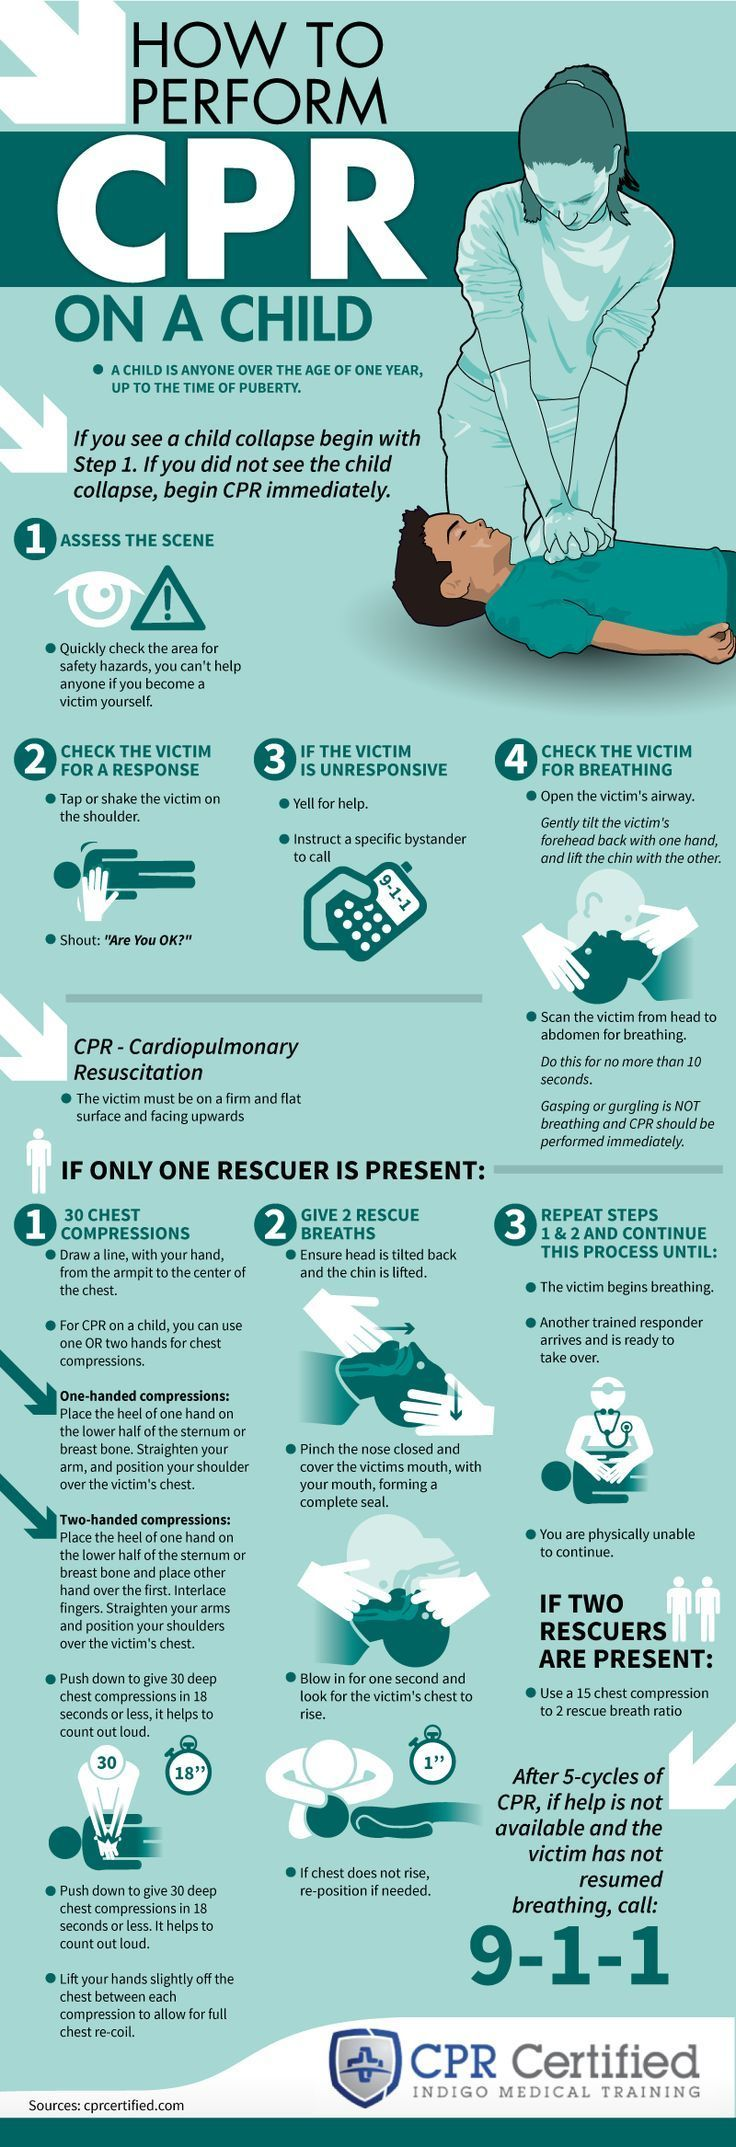 Best 25 red cross website ideas on pinterest american red cross how to give a child cpr read this now because you never know when youaposll need it this is a must for every parent to know xflitez Choice Image